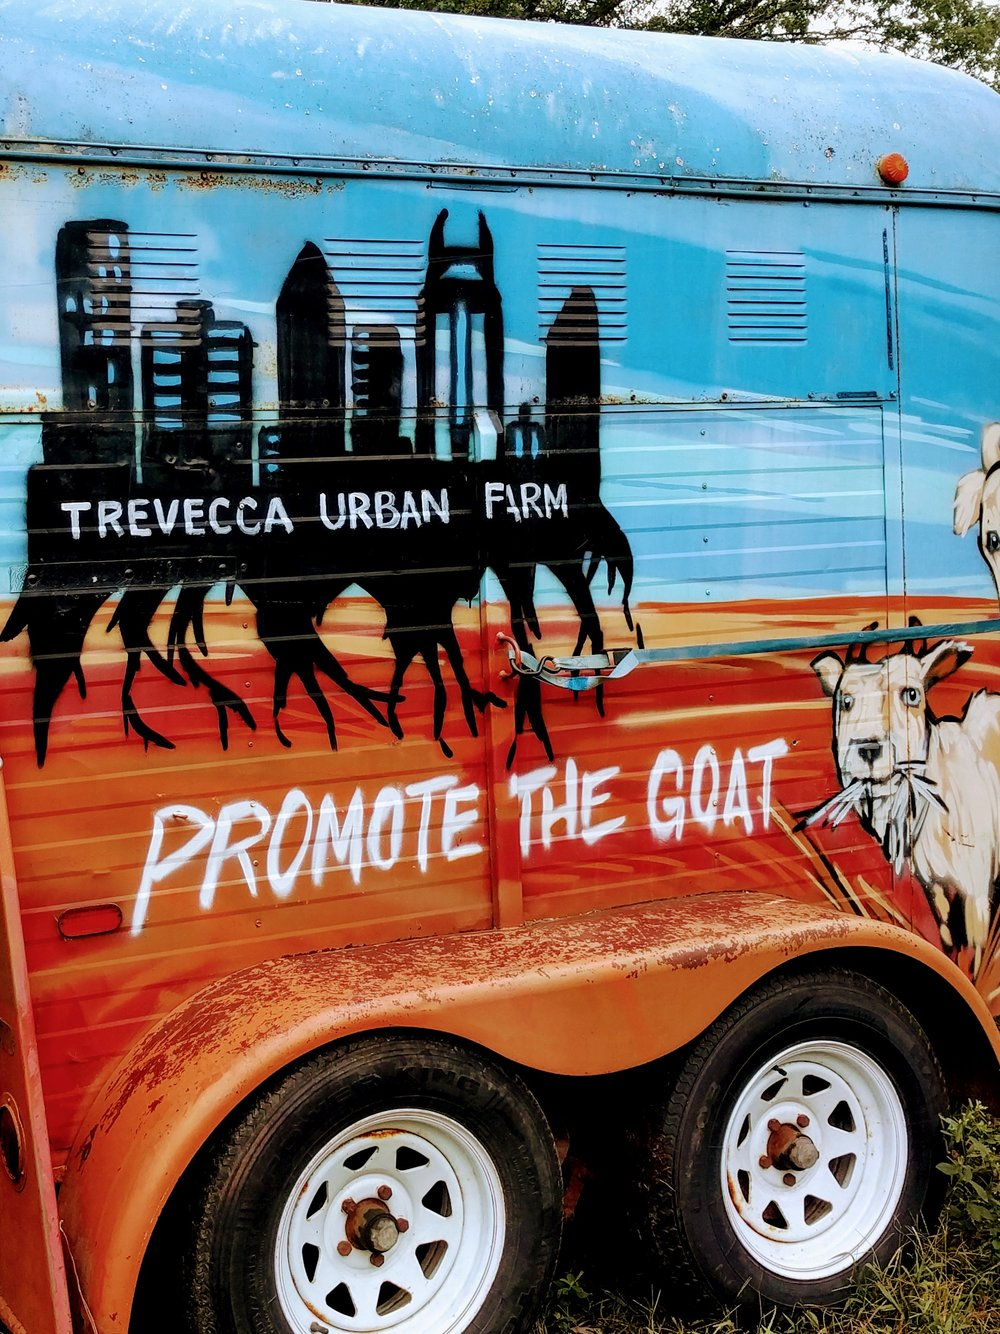 Special thanks to our friends at the Trevecca Urban Farm - for their investment, encouragement, and ongoing support of our project.